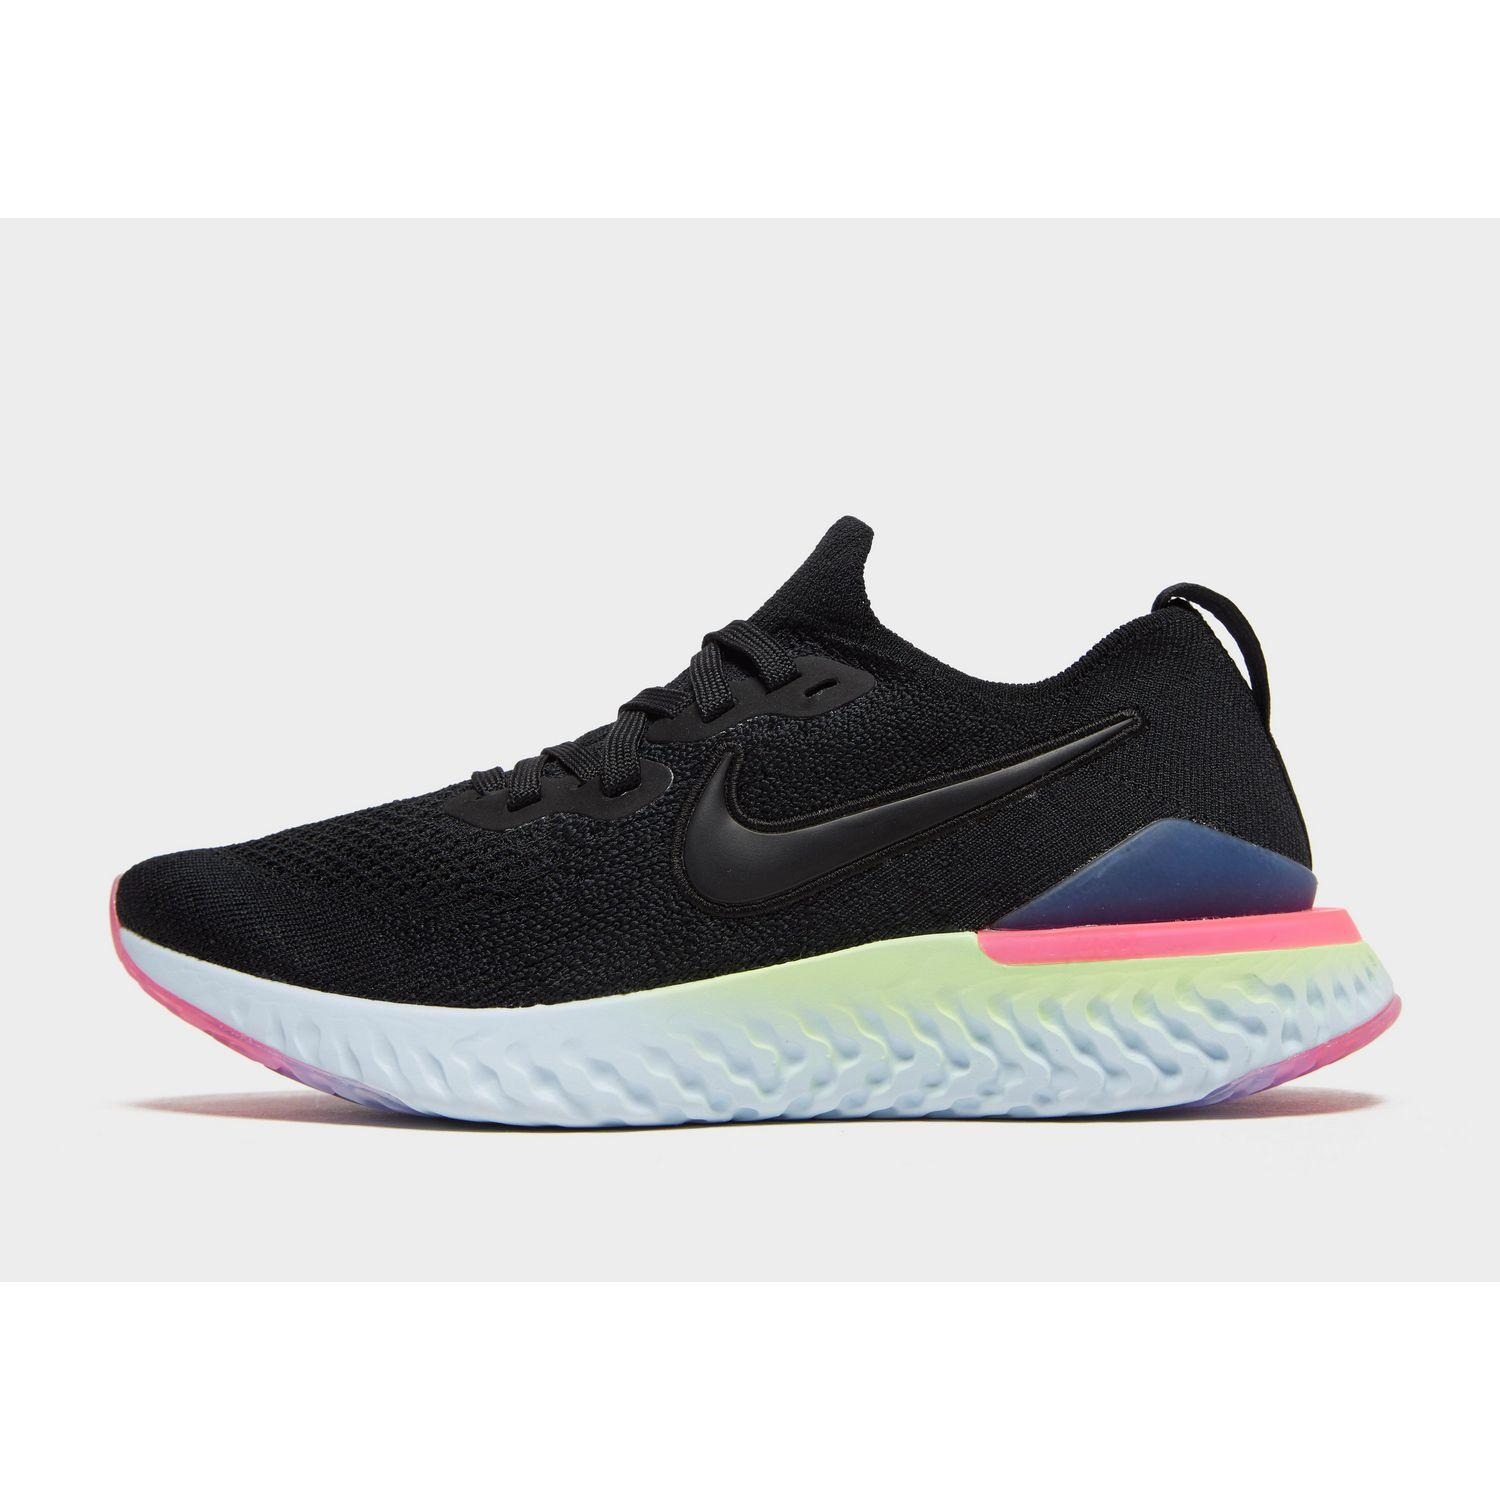 5a7014f517c0fe Nike Epic React Flyknit 2 in Black - Lyst